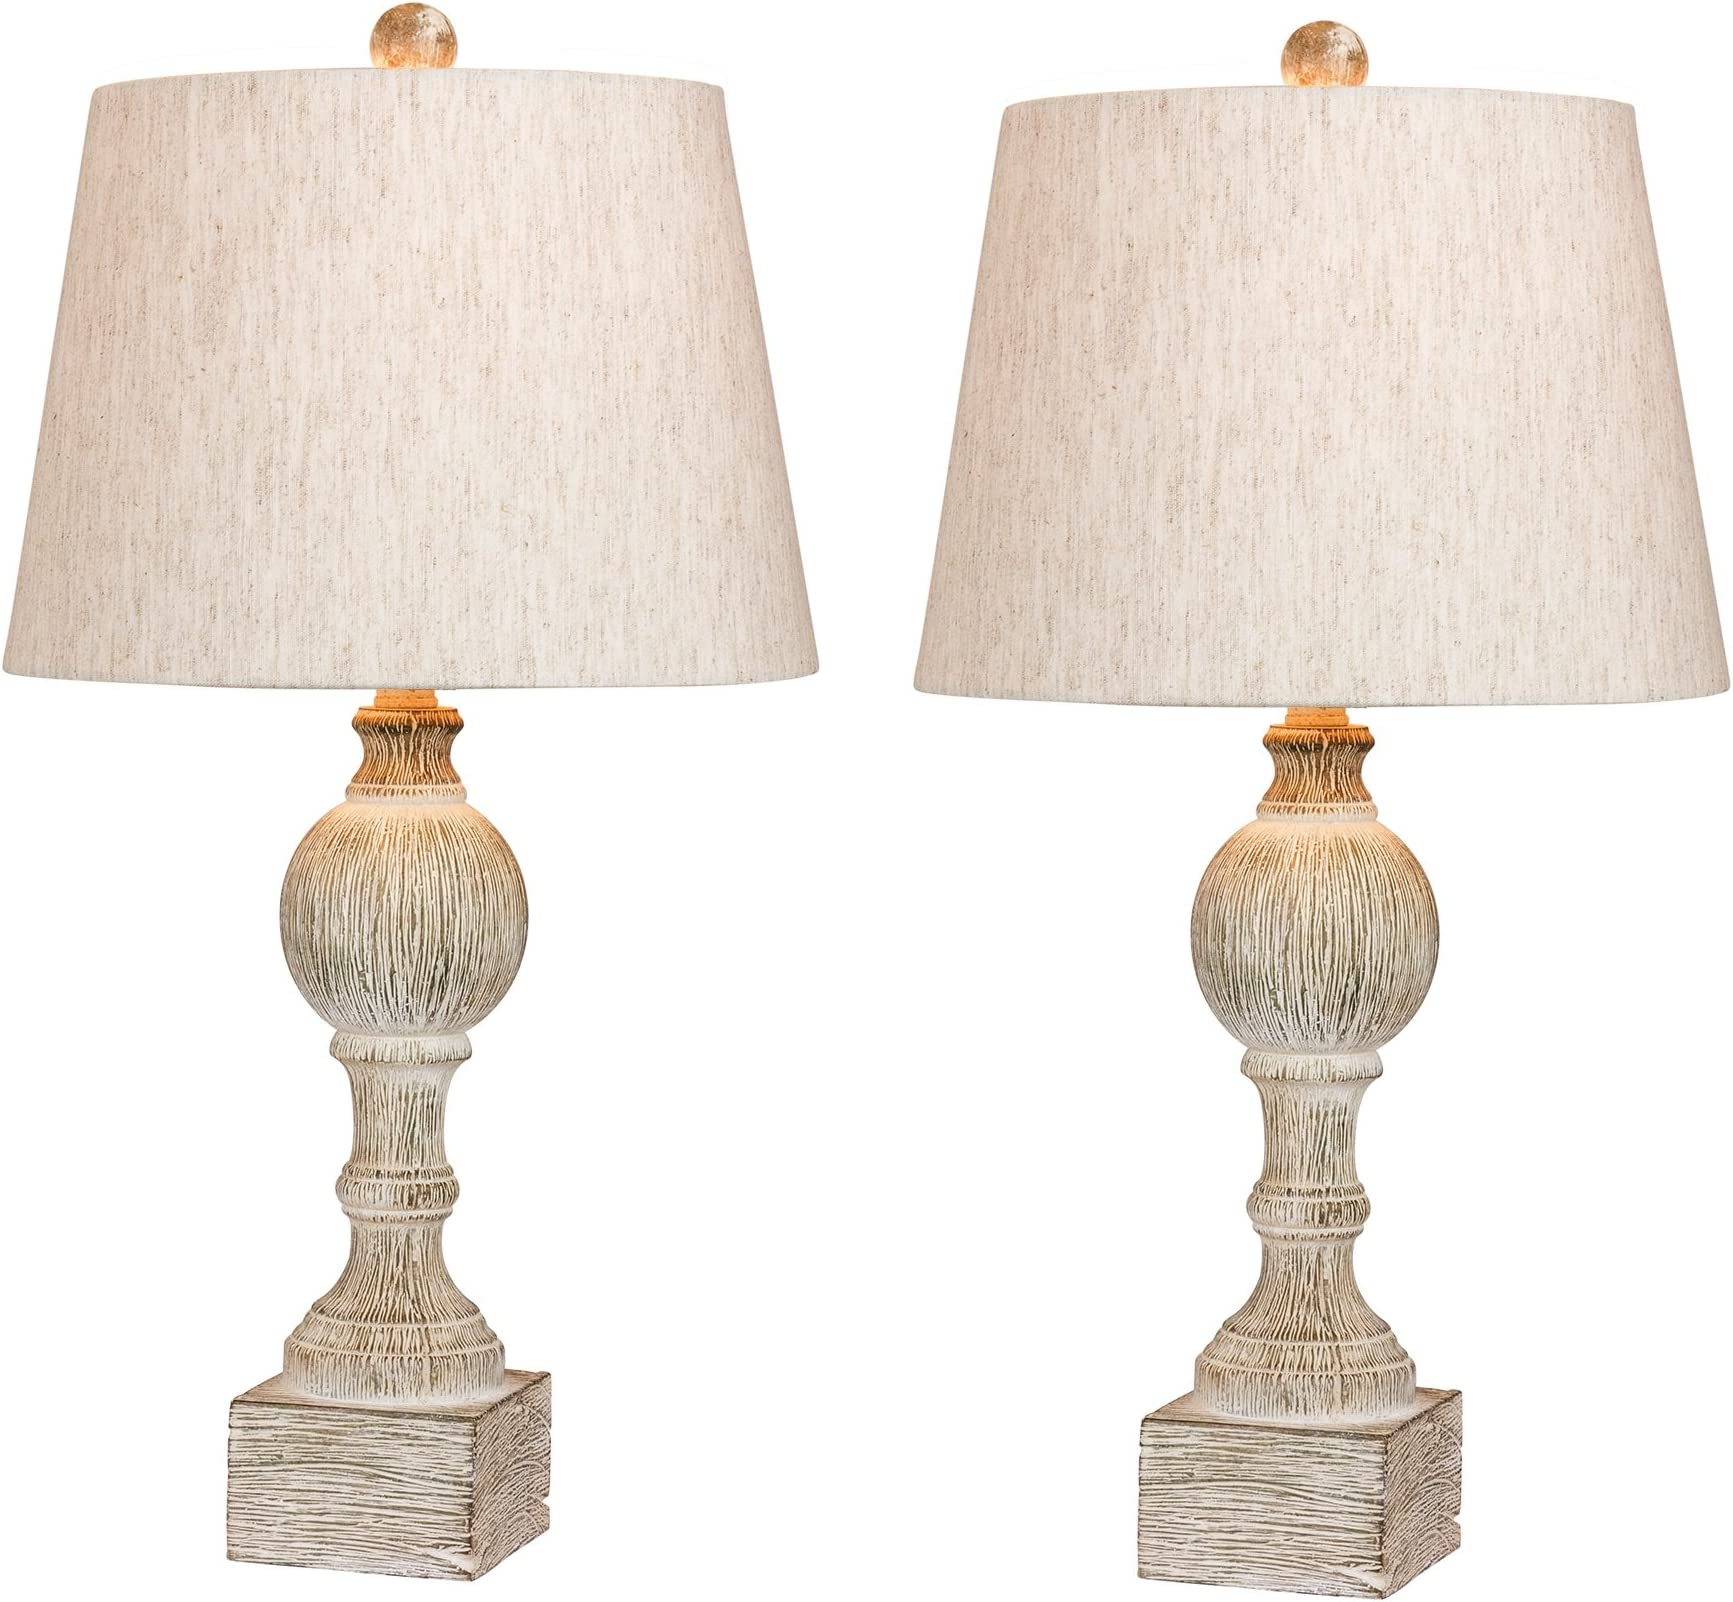 Vintage White /& Yellow Laura Ashley Wood Candlestick Table Lamps Set of 3